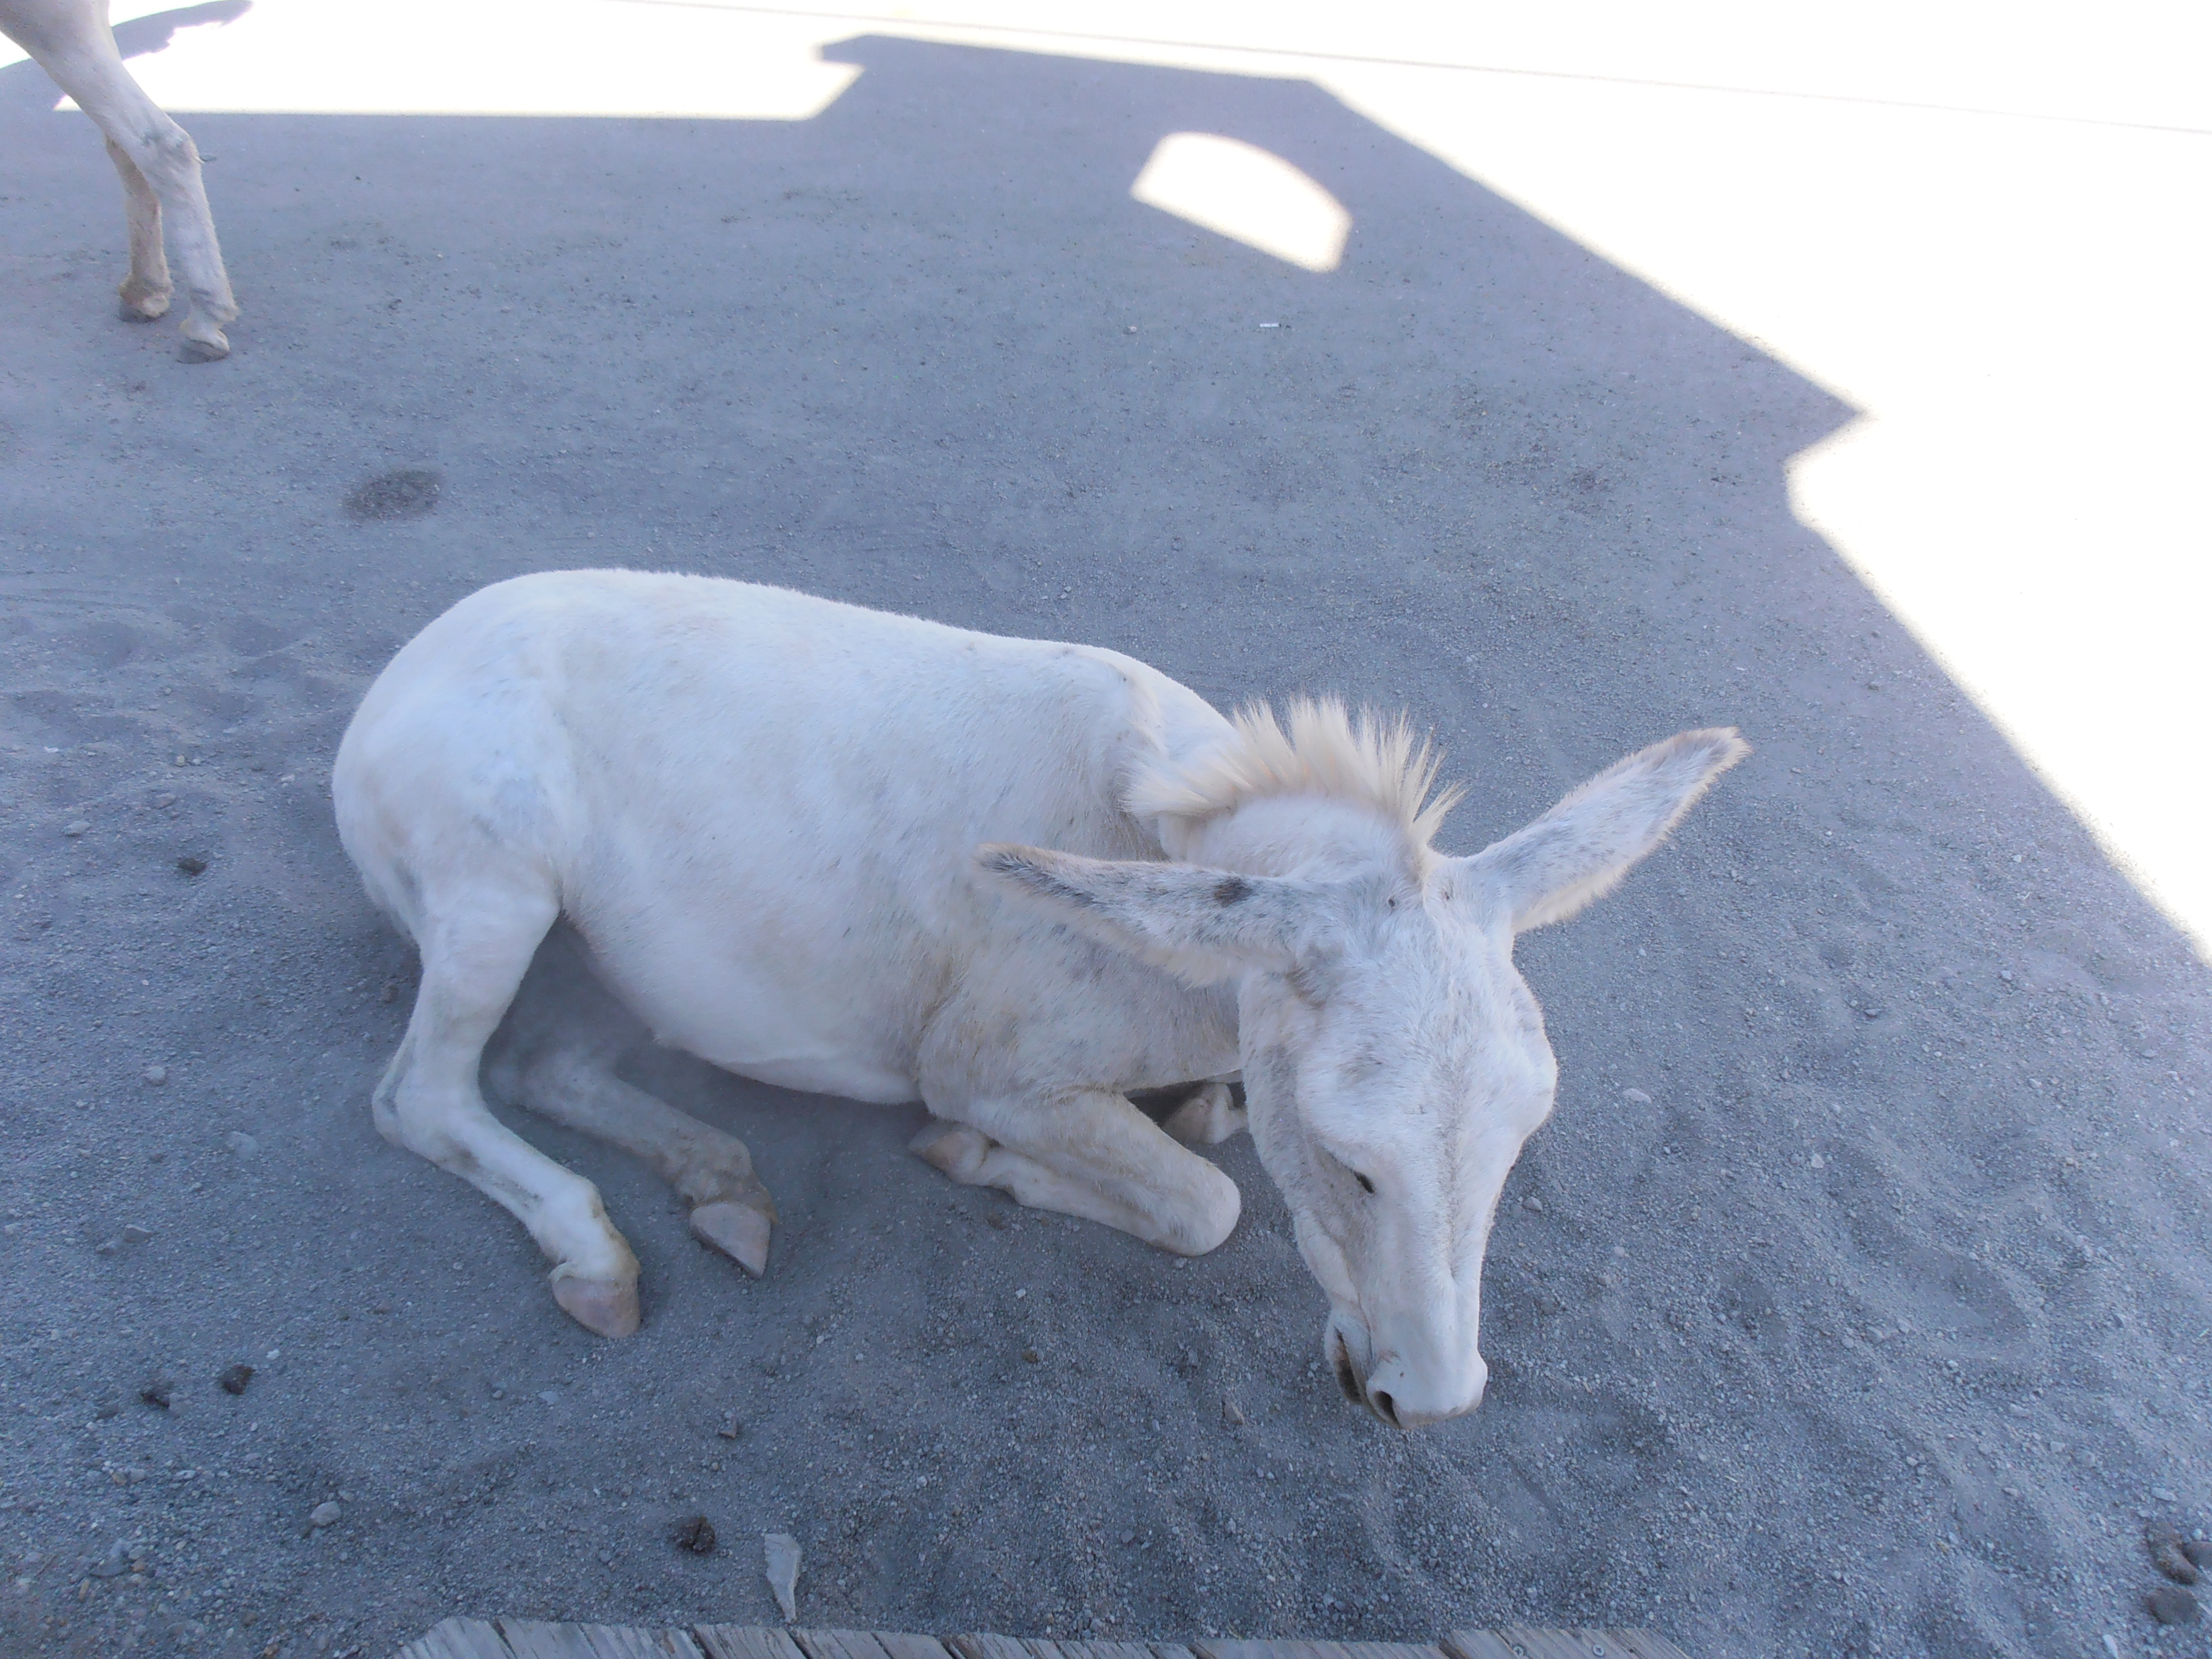 oatman chat Browse and compare cars for sale near oatman, az 86433 from local dealers and private sellers.